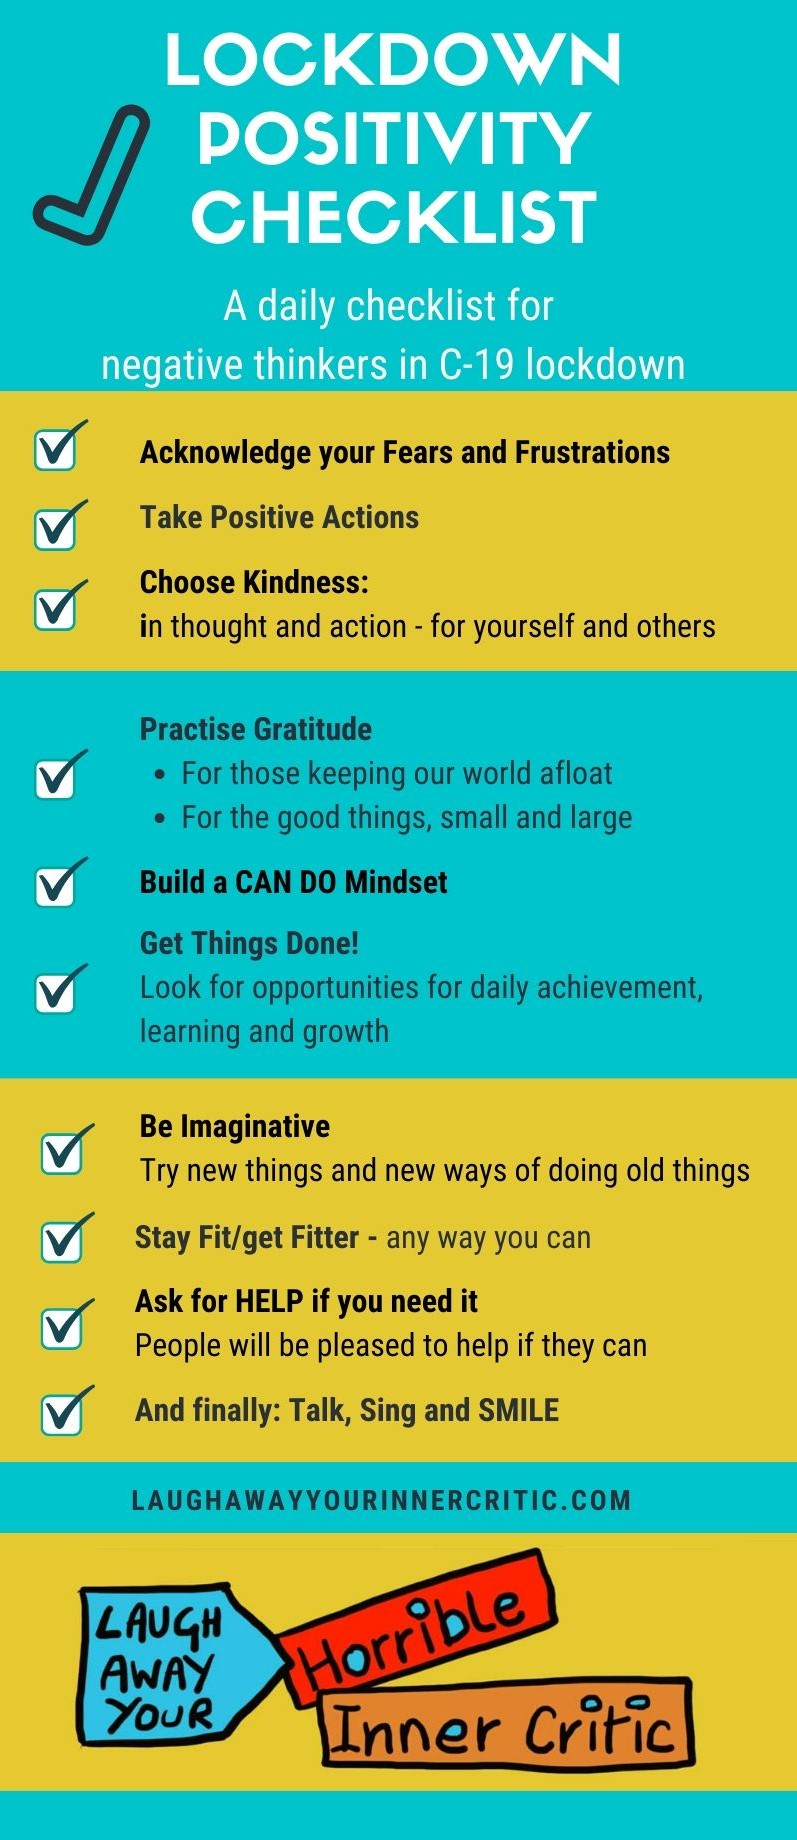 Lockdown Positivity Checklist